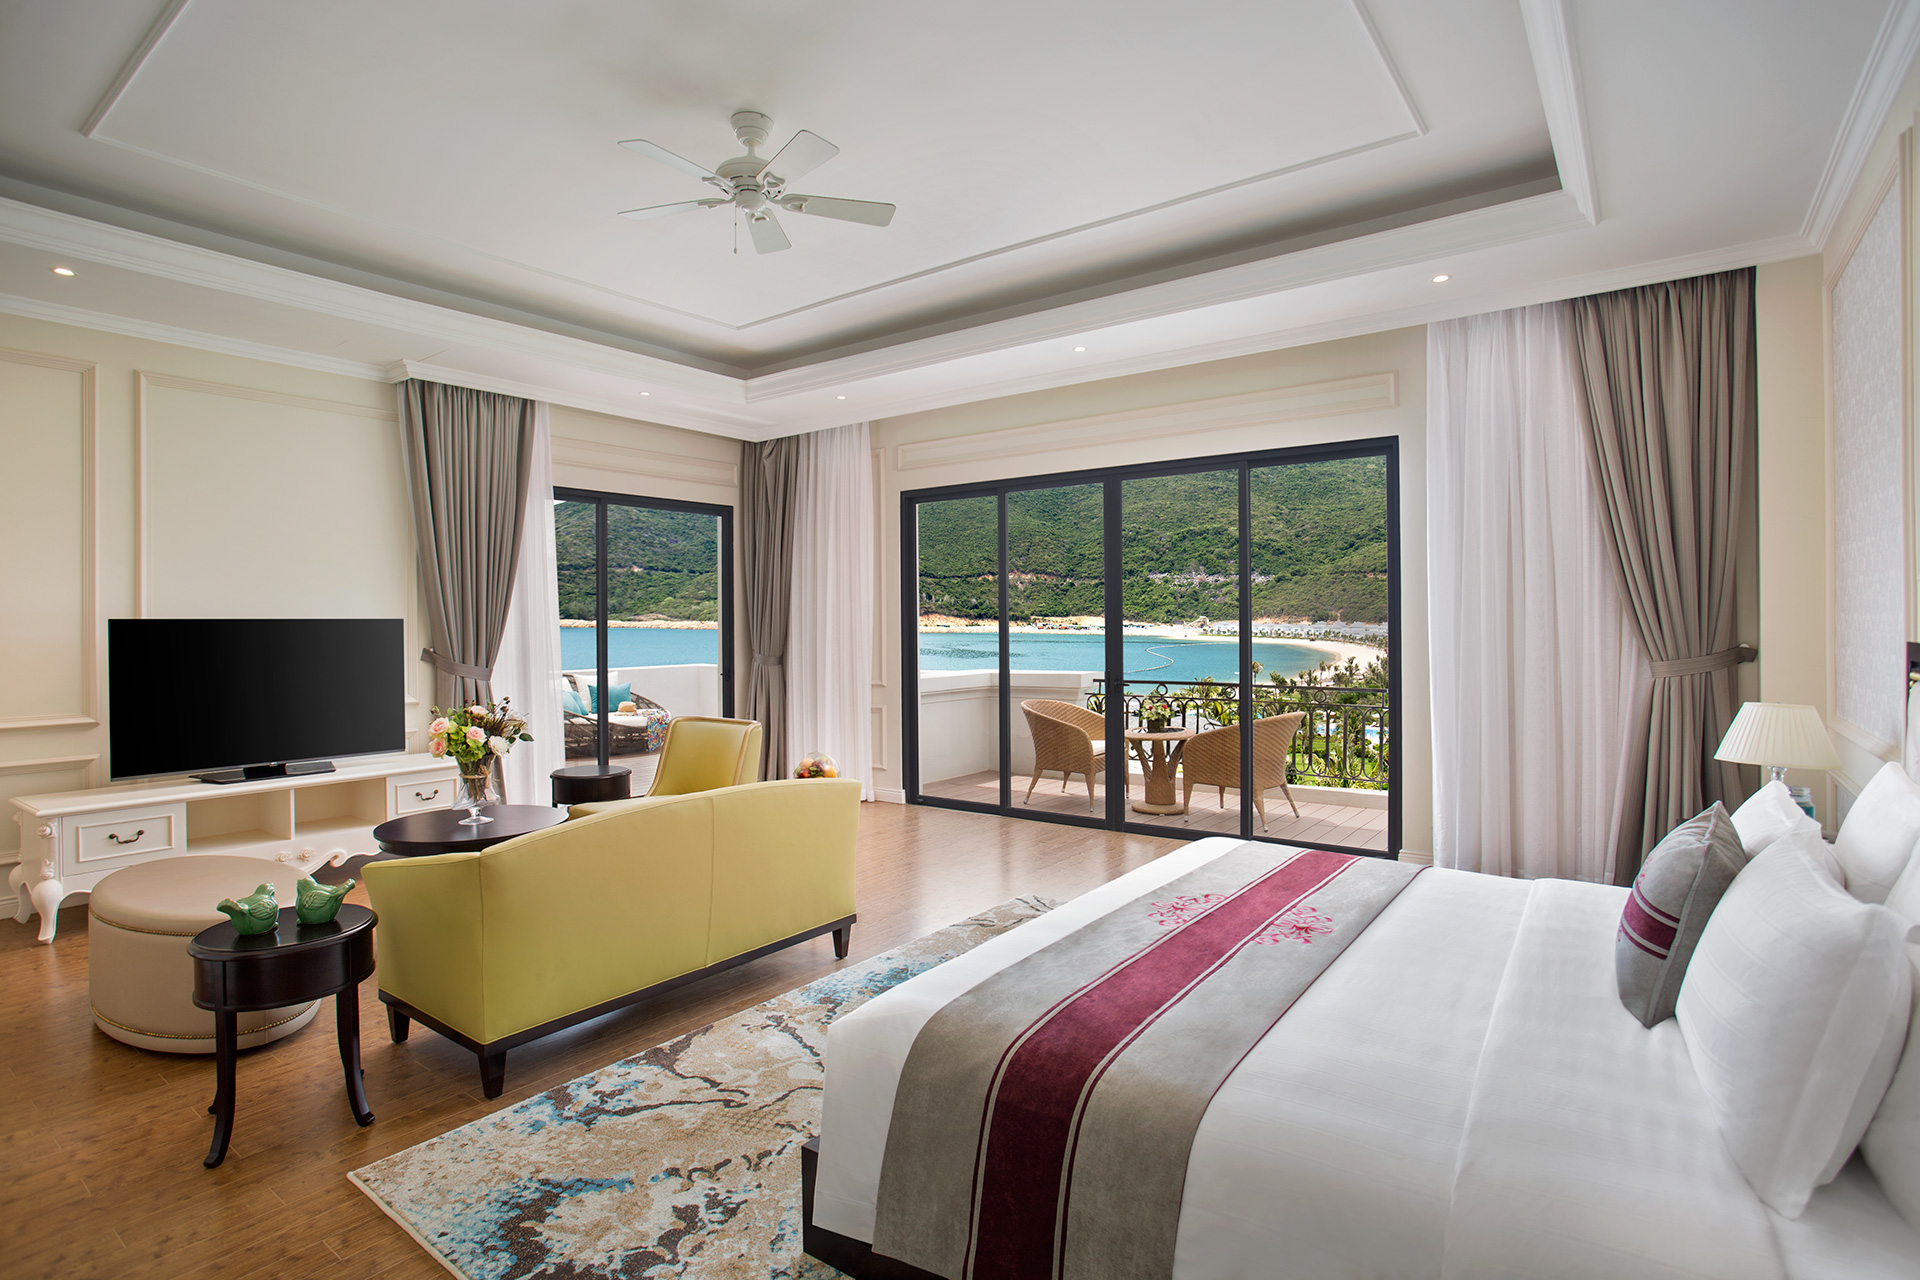 Vinpearl Discovery NhaTrang